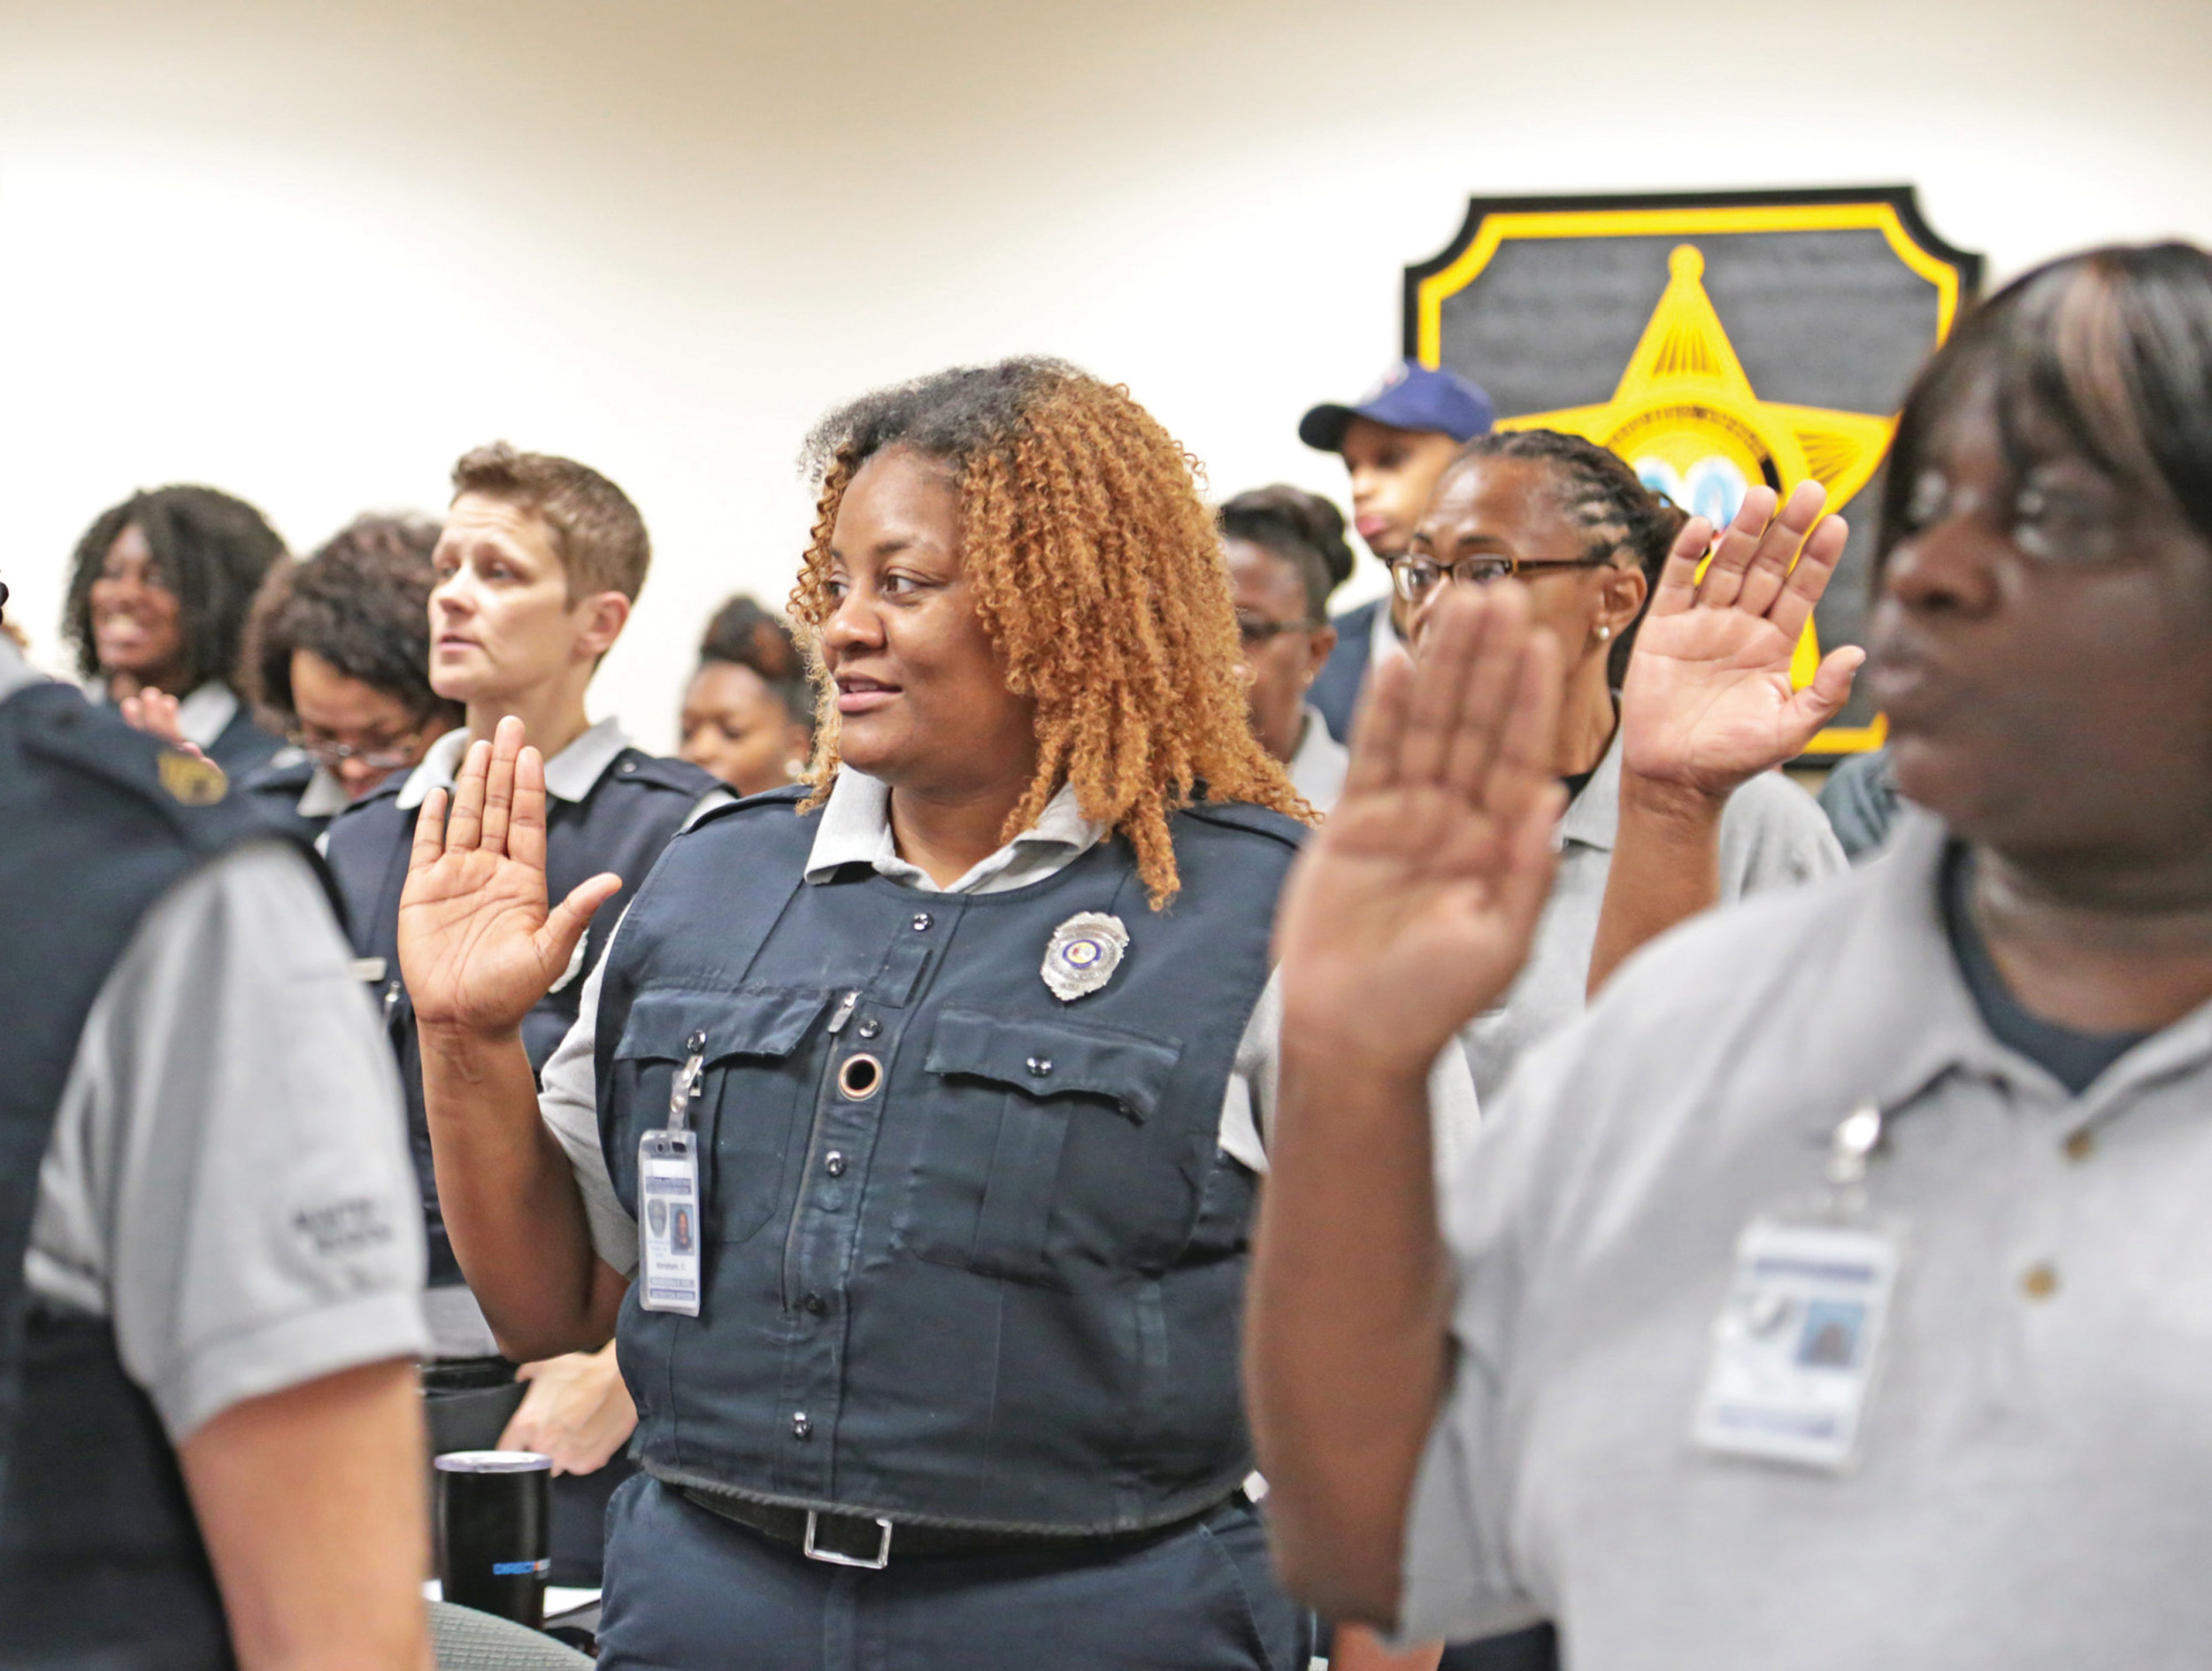 Corrections officers with Sumter-Lee Regional Detention Center recite their oath as they are sworn in as employees of Sumter County Sheriff's Office on Wednesday morning. Sumter County Council approved an ordinance giving Sheriff Anthony Dennis the authority to manage the detention center during its meeting on Tuesday.